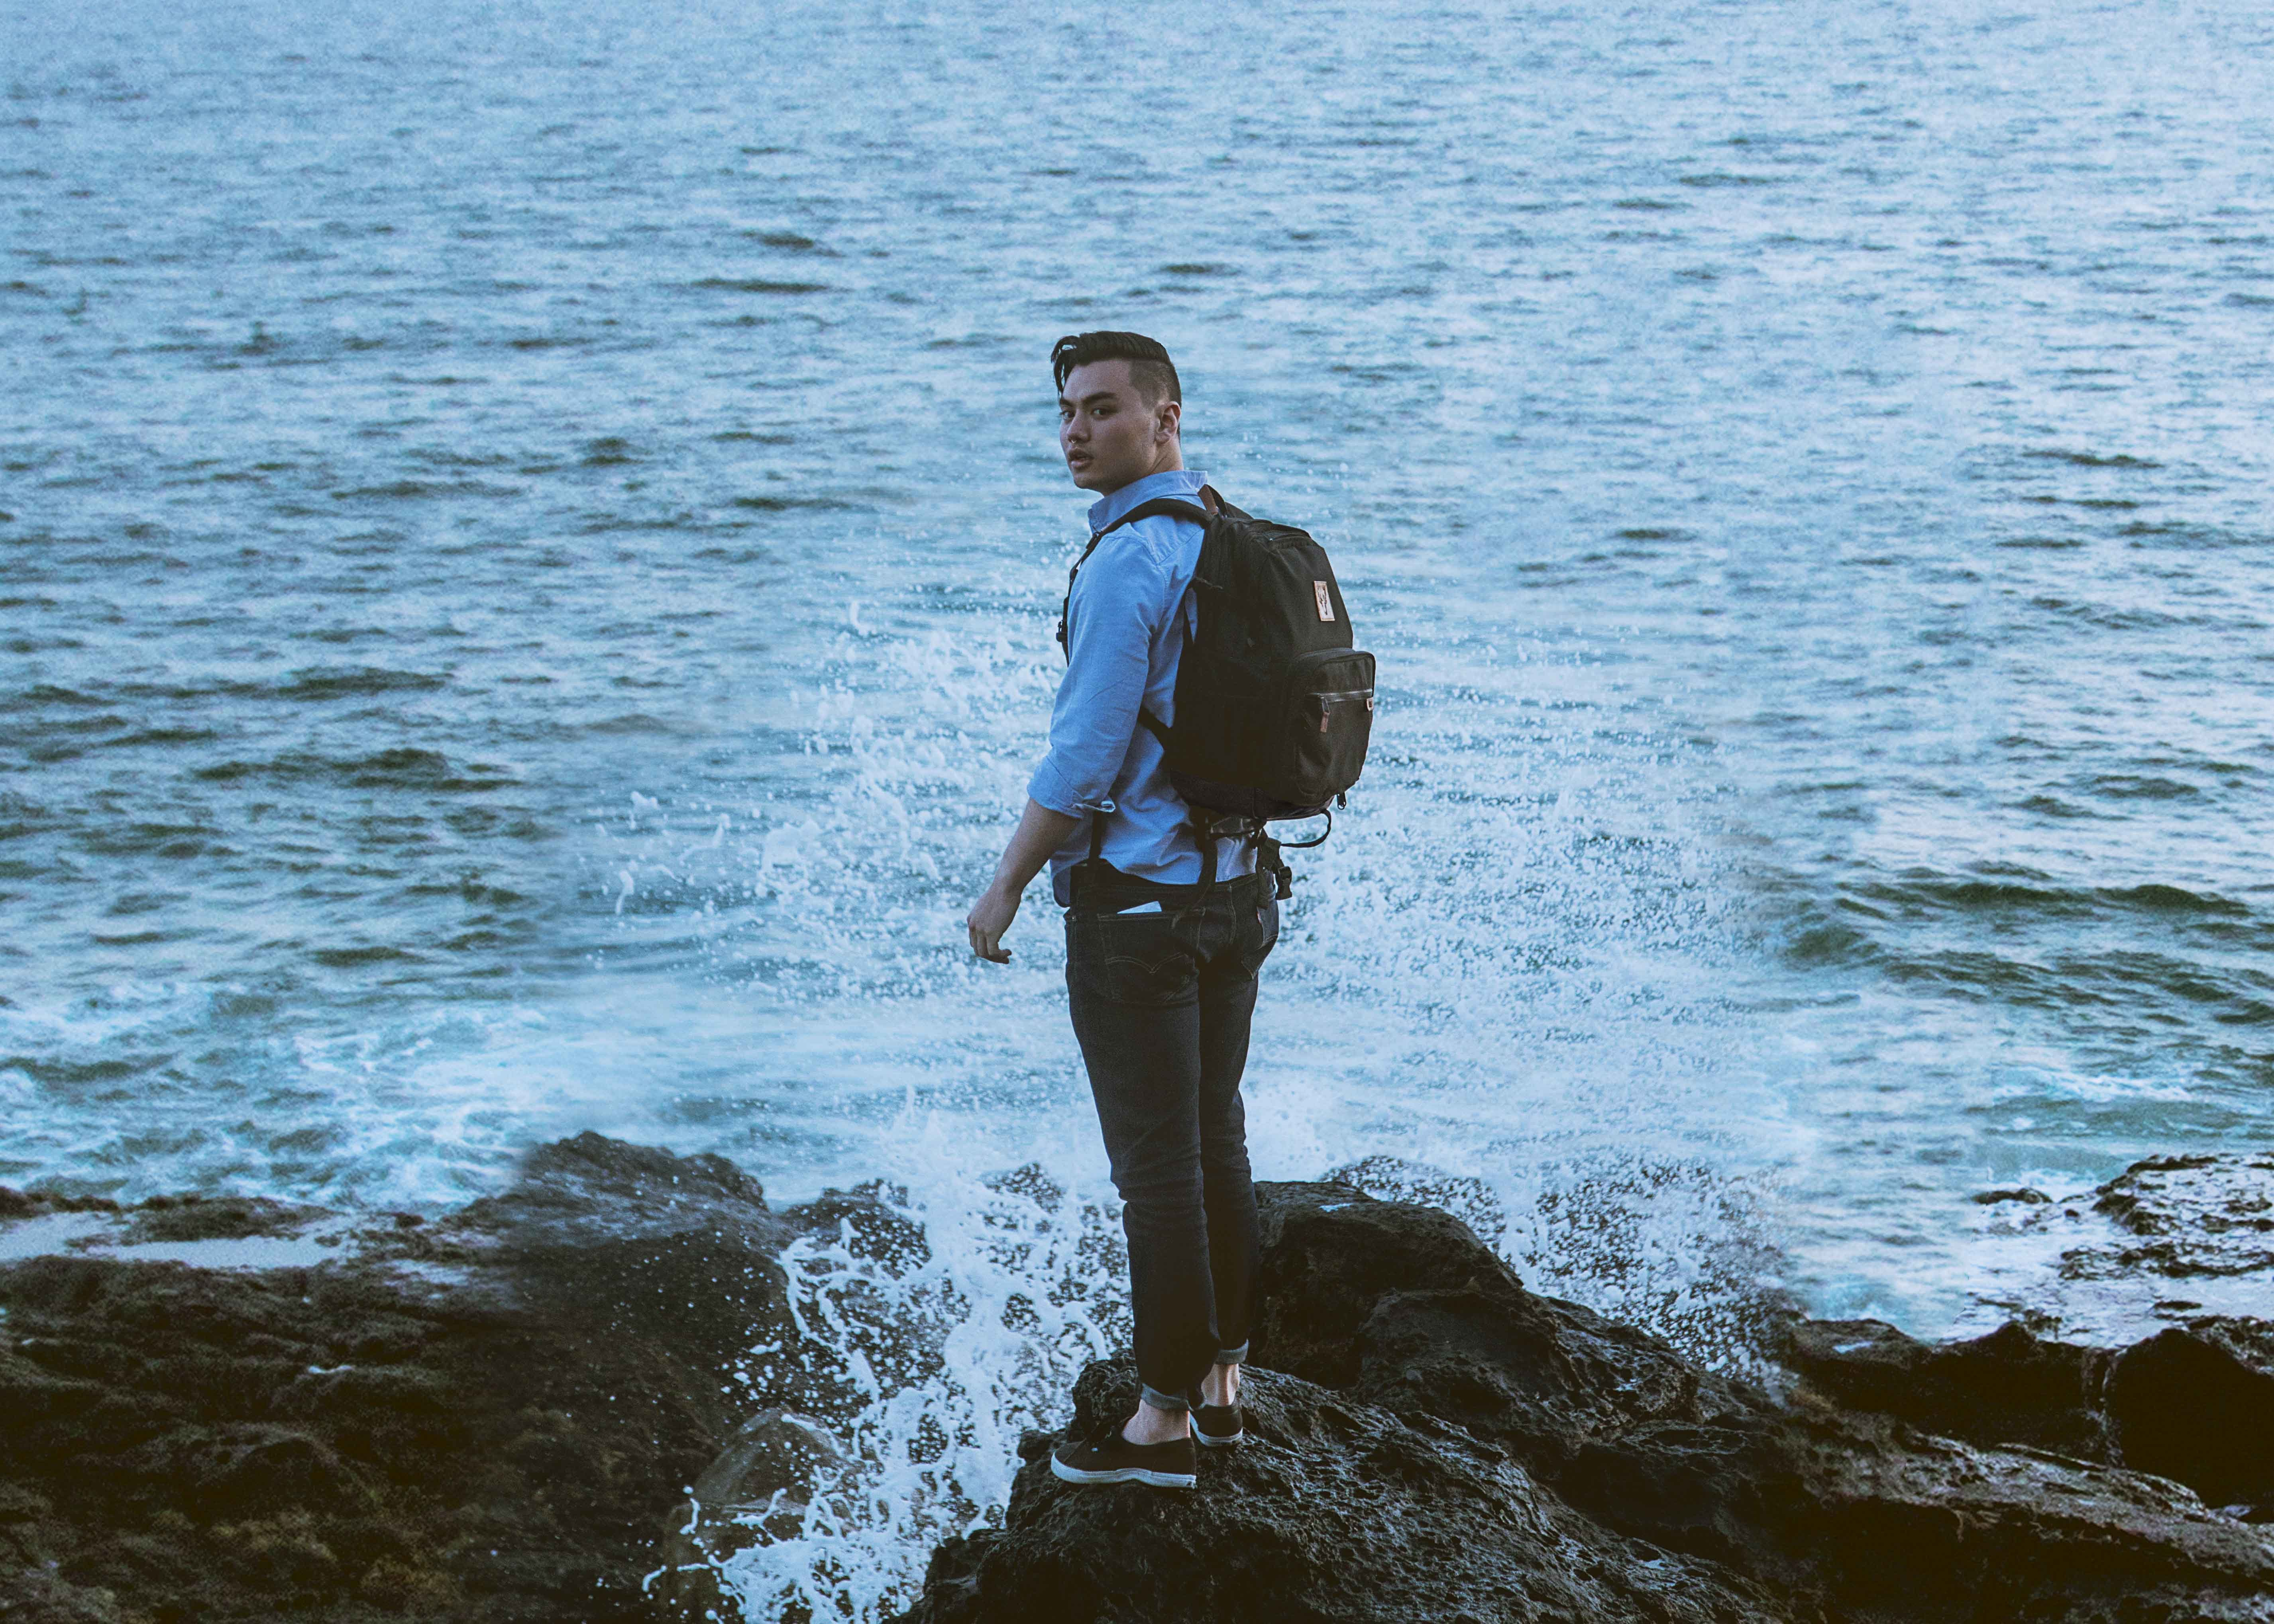 man standing on gray rock formation near body of water wearing backpack